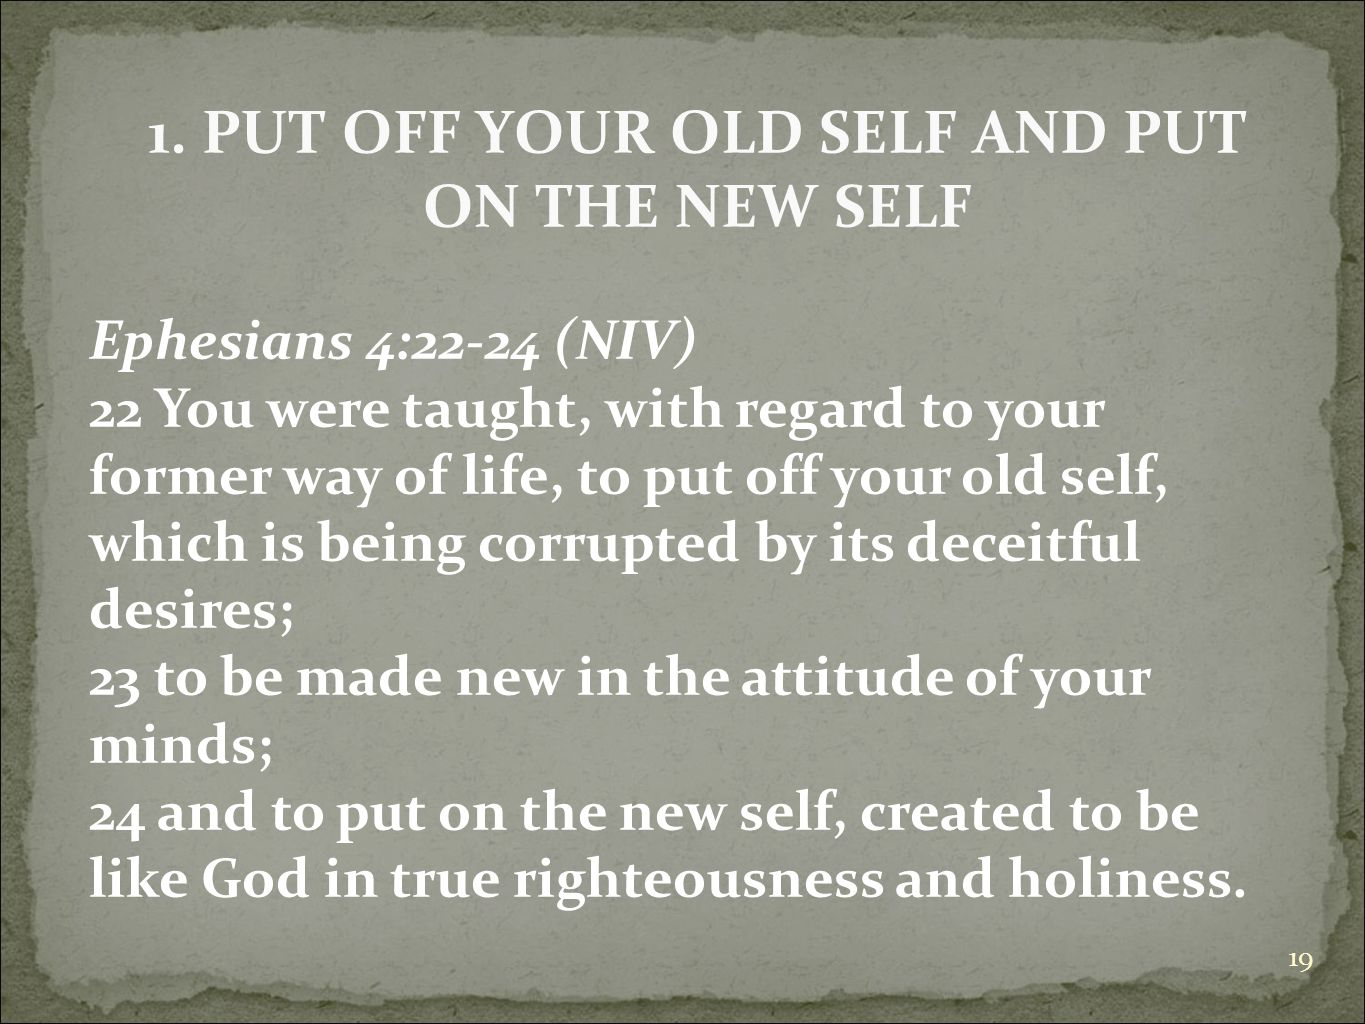 1. PUT OFF YOUR OLD SELF AND PUT ON THE NEW SELF